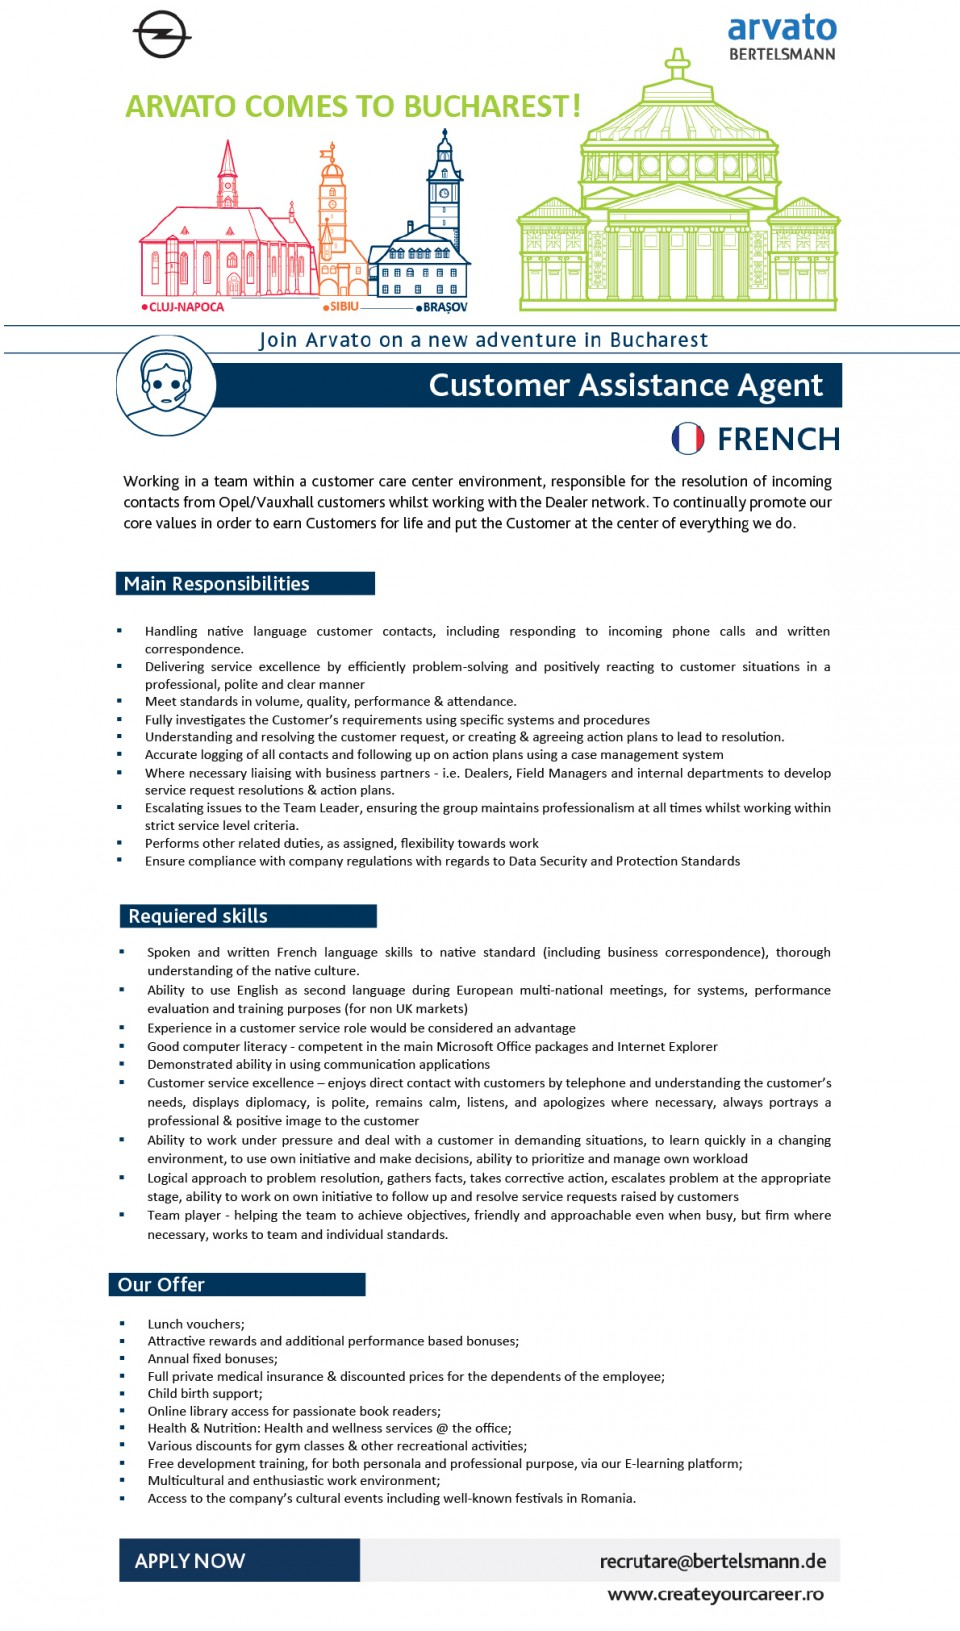 Customer Assistance Agent - FRENCH